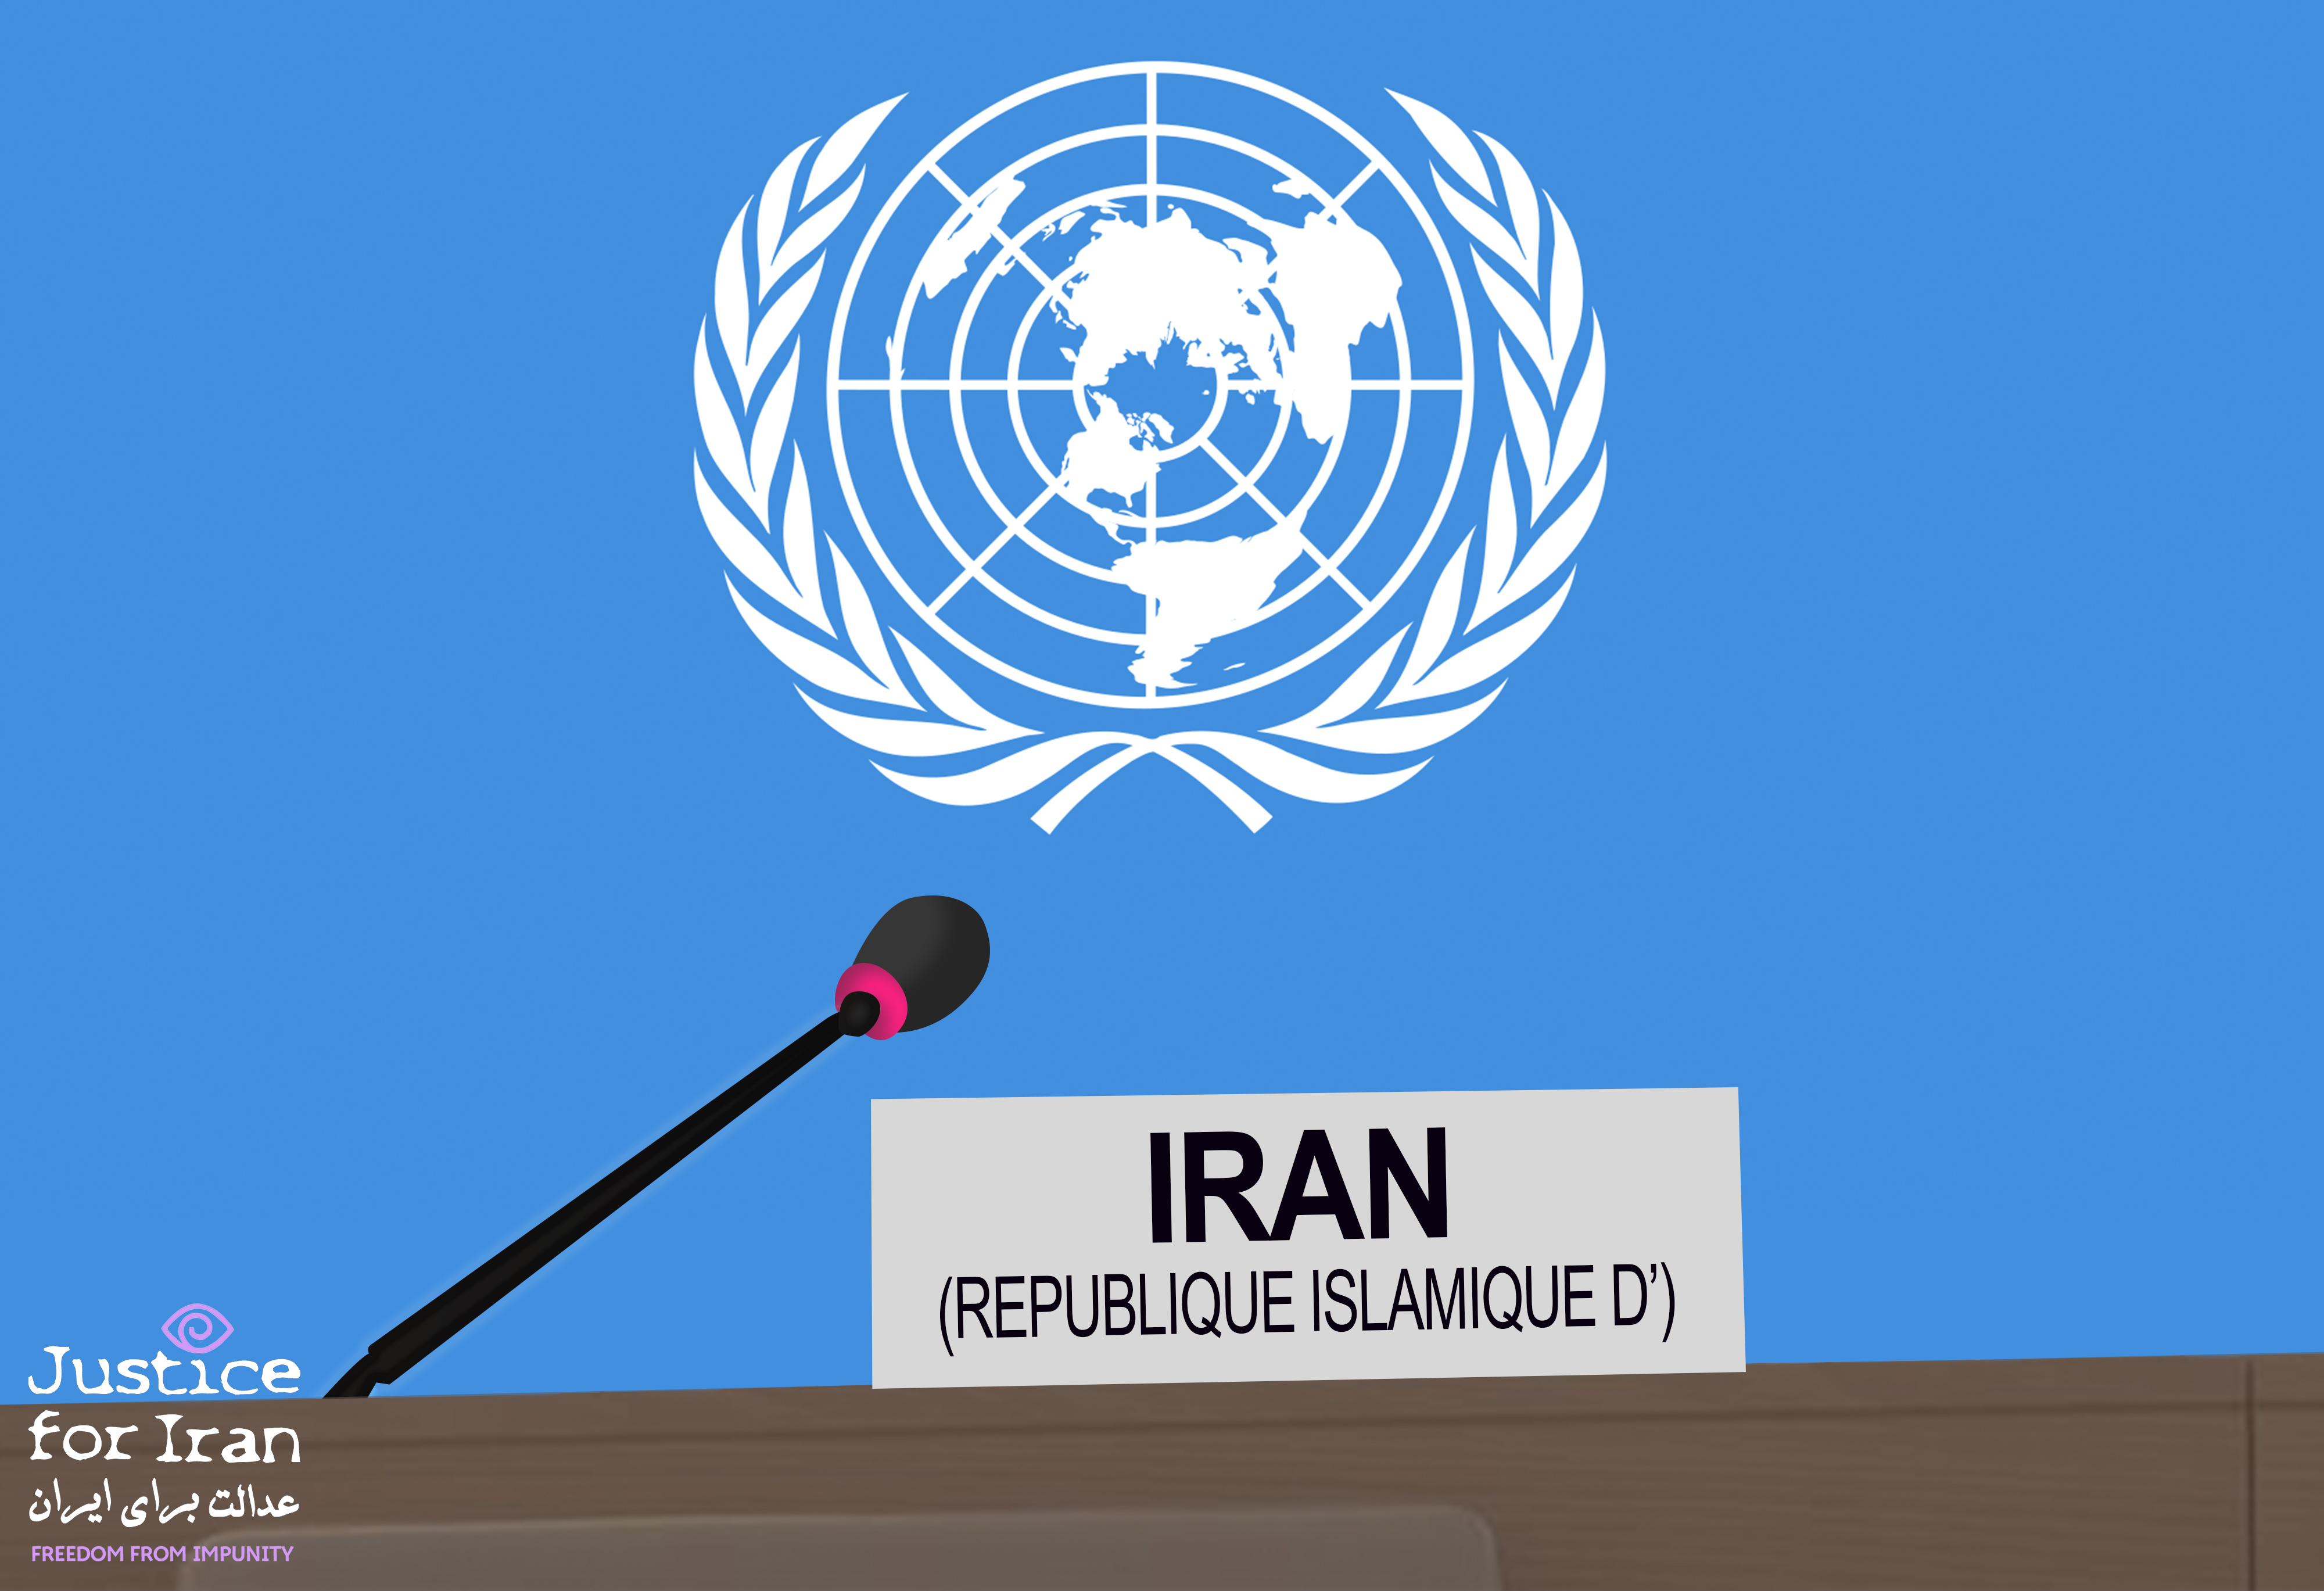 This Friday in Geneva: The international community looks at the Islamic Republic's human rights record from the last 5 years